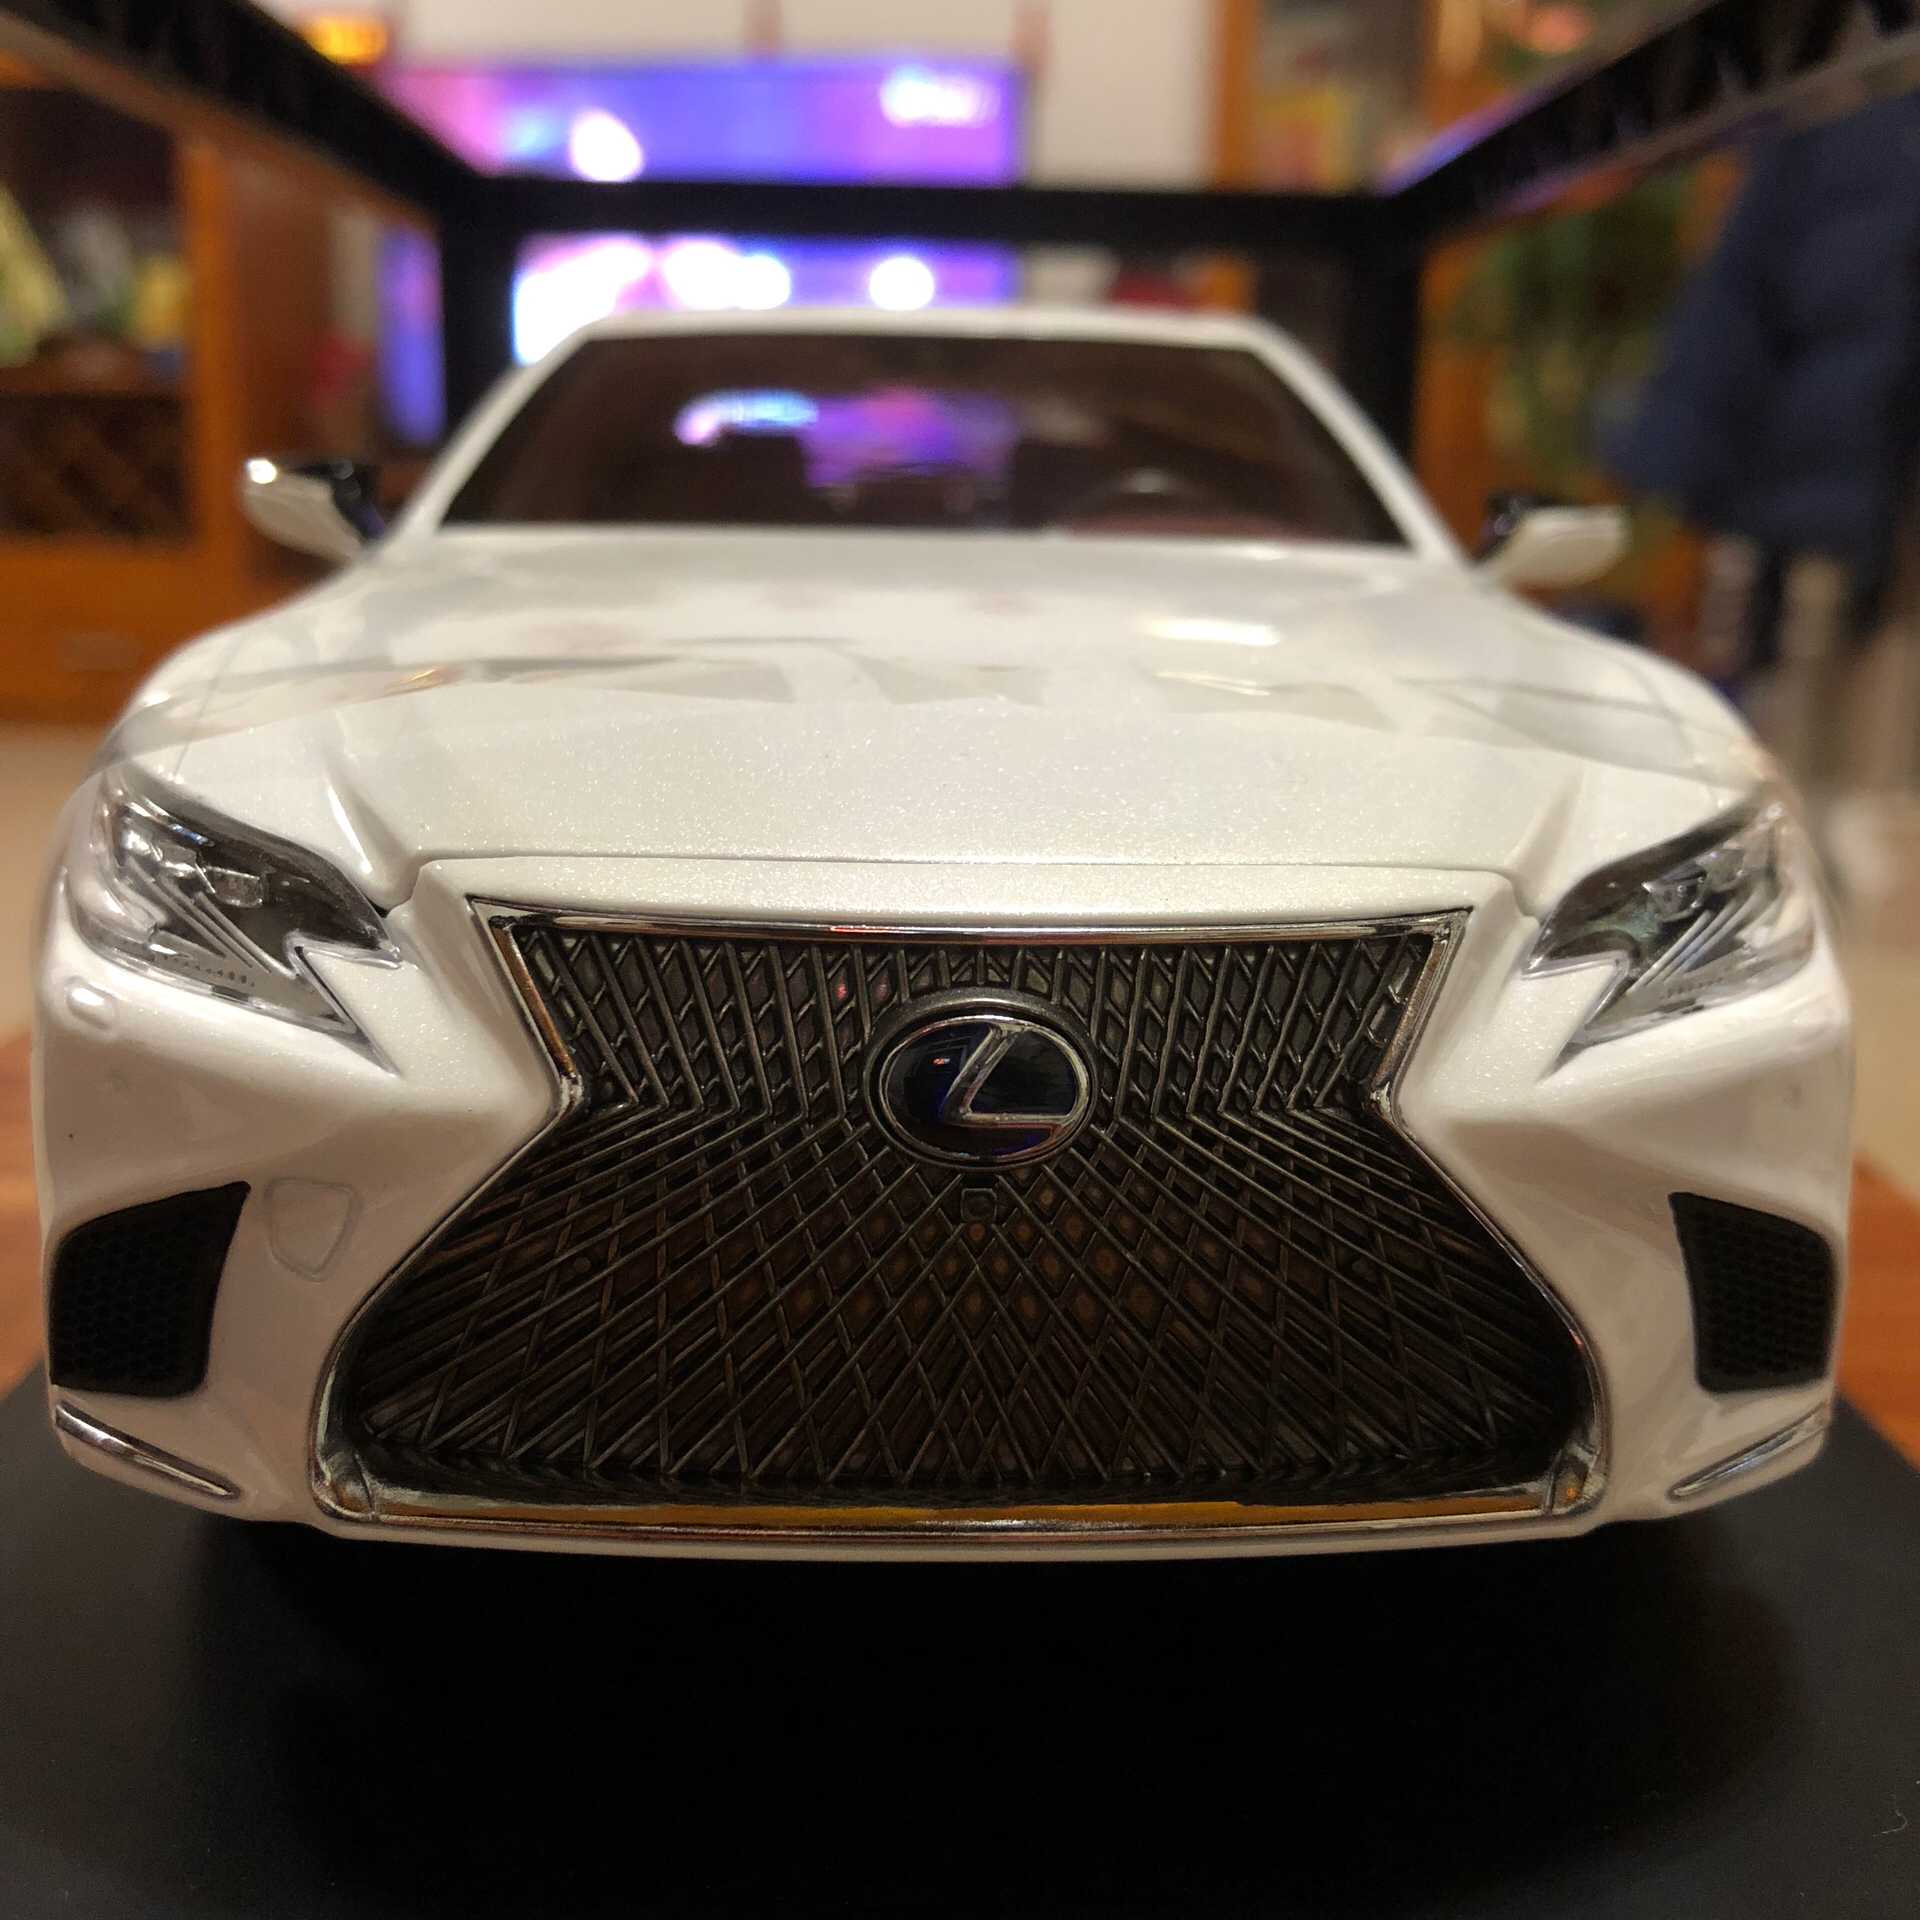 1/18 Toyota Lexus LS500h 2018 Ls 500 LS500 LC500 Alloy Toy Car, Diecast Scale Model Car, Collectible Model Car, Miniature Collection Die-cast Toy Vehicles Gifts